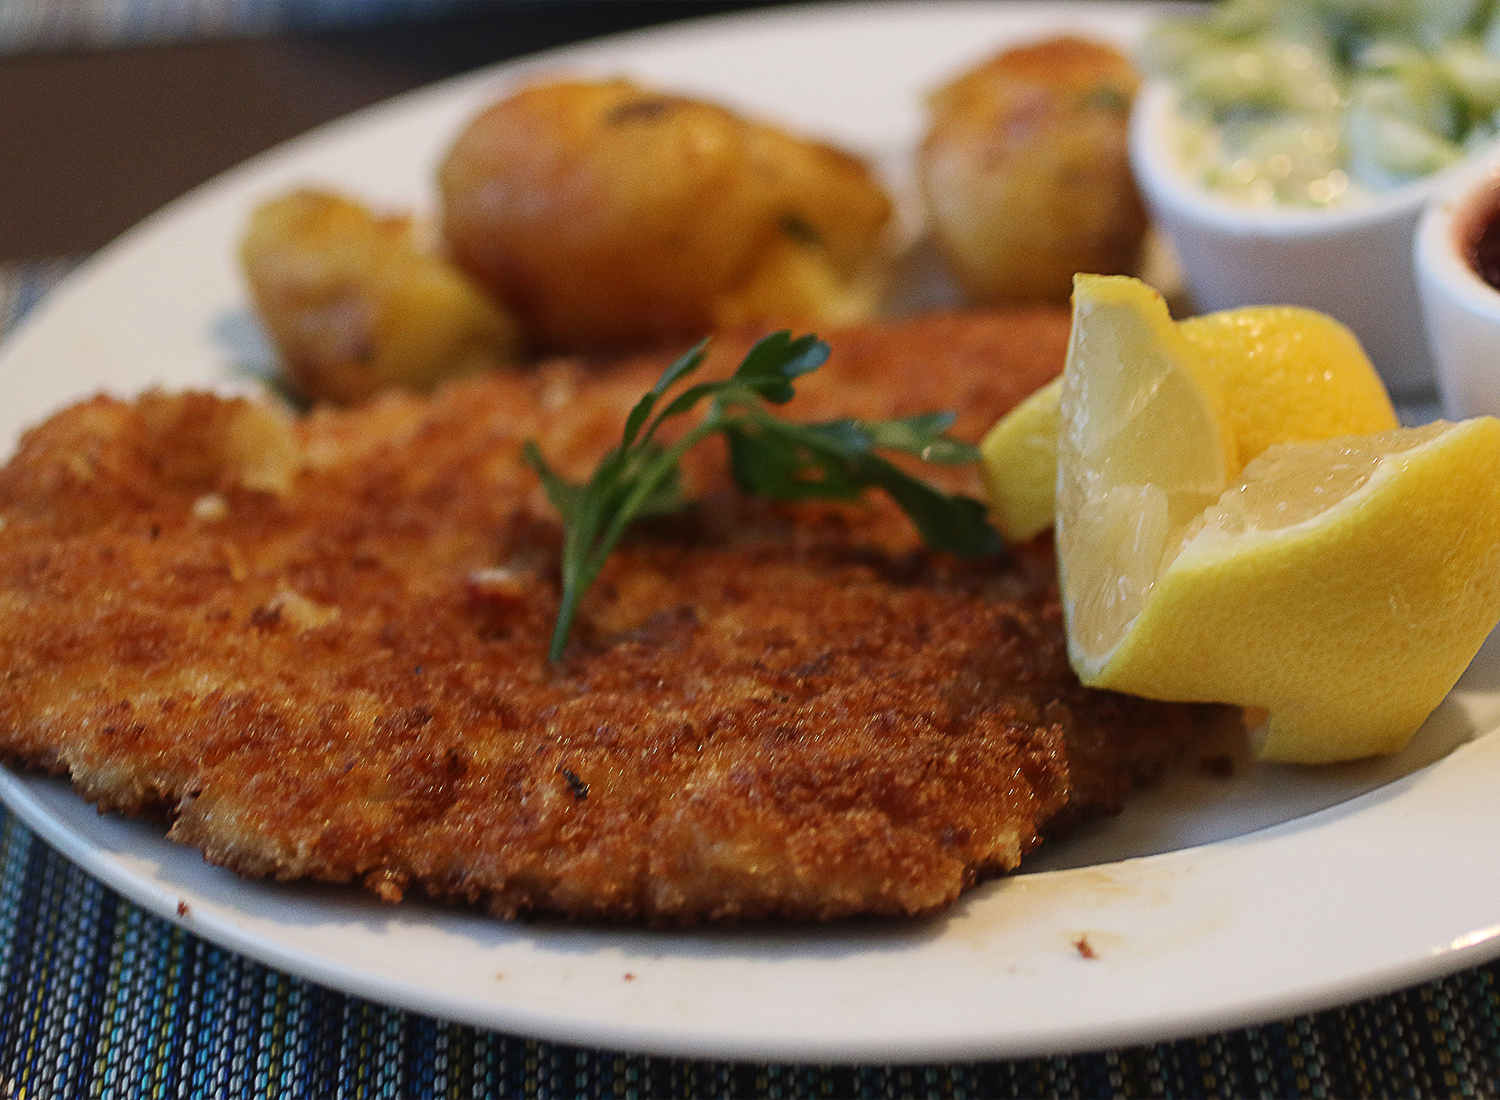 Wiener schnitzle at Tisza Bistro in Windsor. Heather Irwin/PD